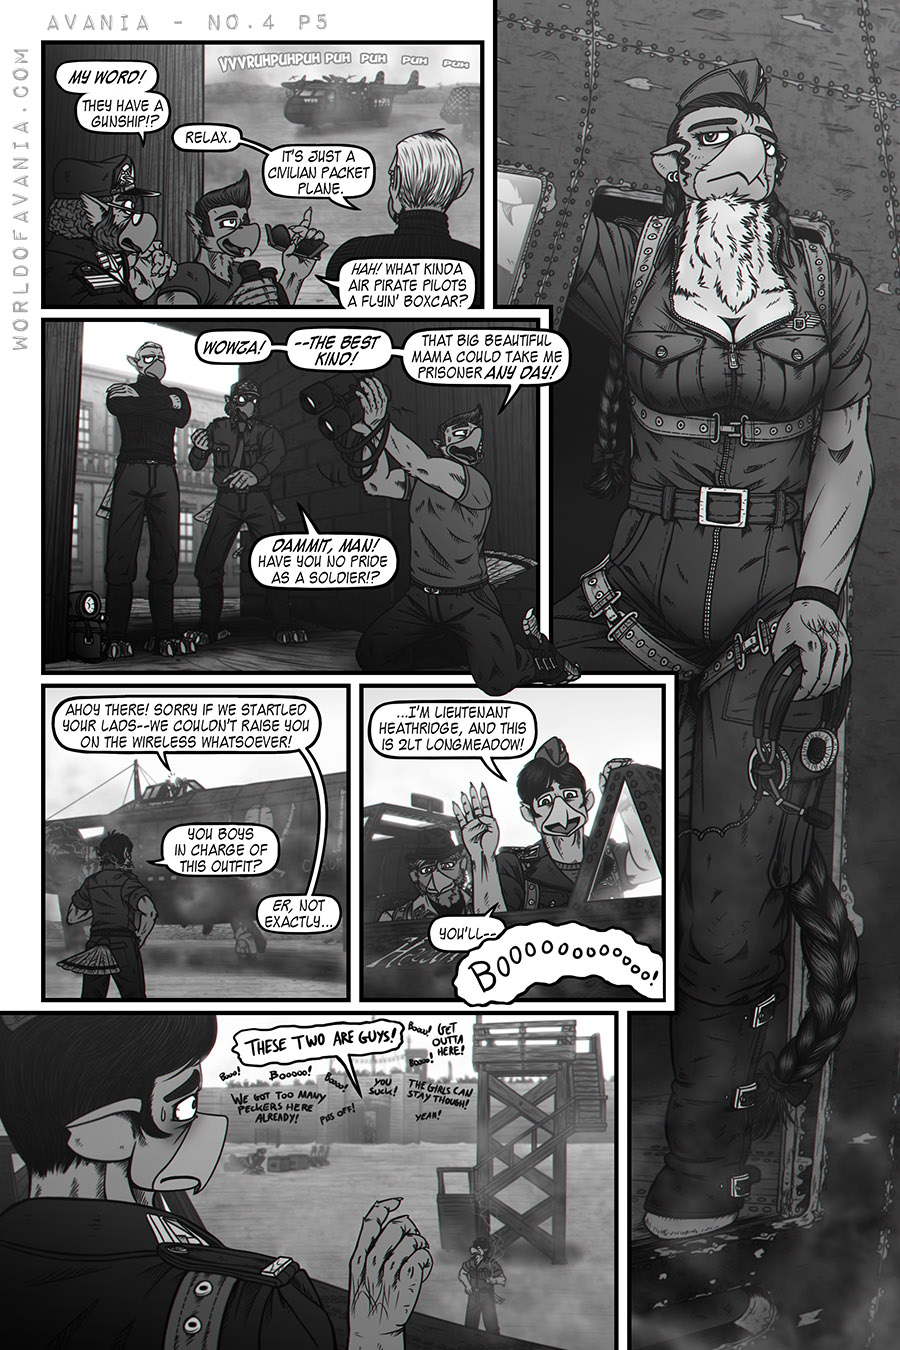 Avania Comic - Issue No.4, Page 5